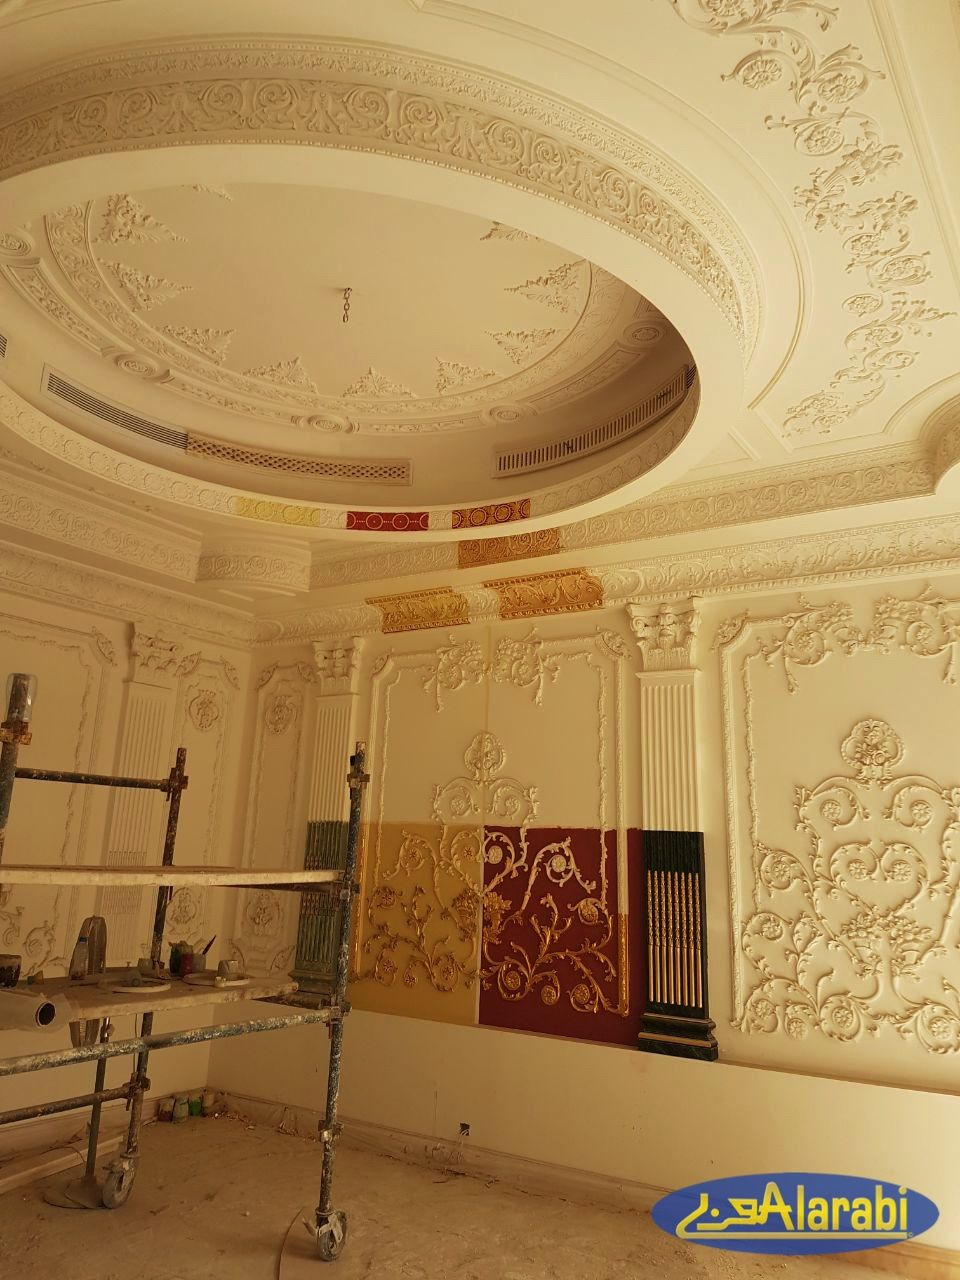 Alarabi Decoration and Construction Co.Ltd, has been operating in ...